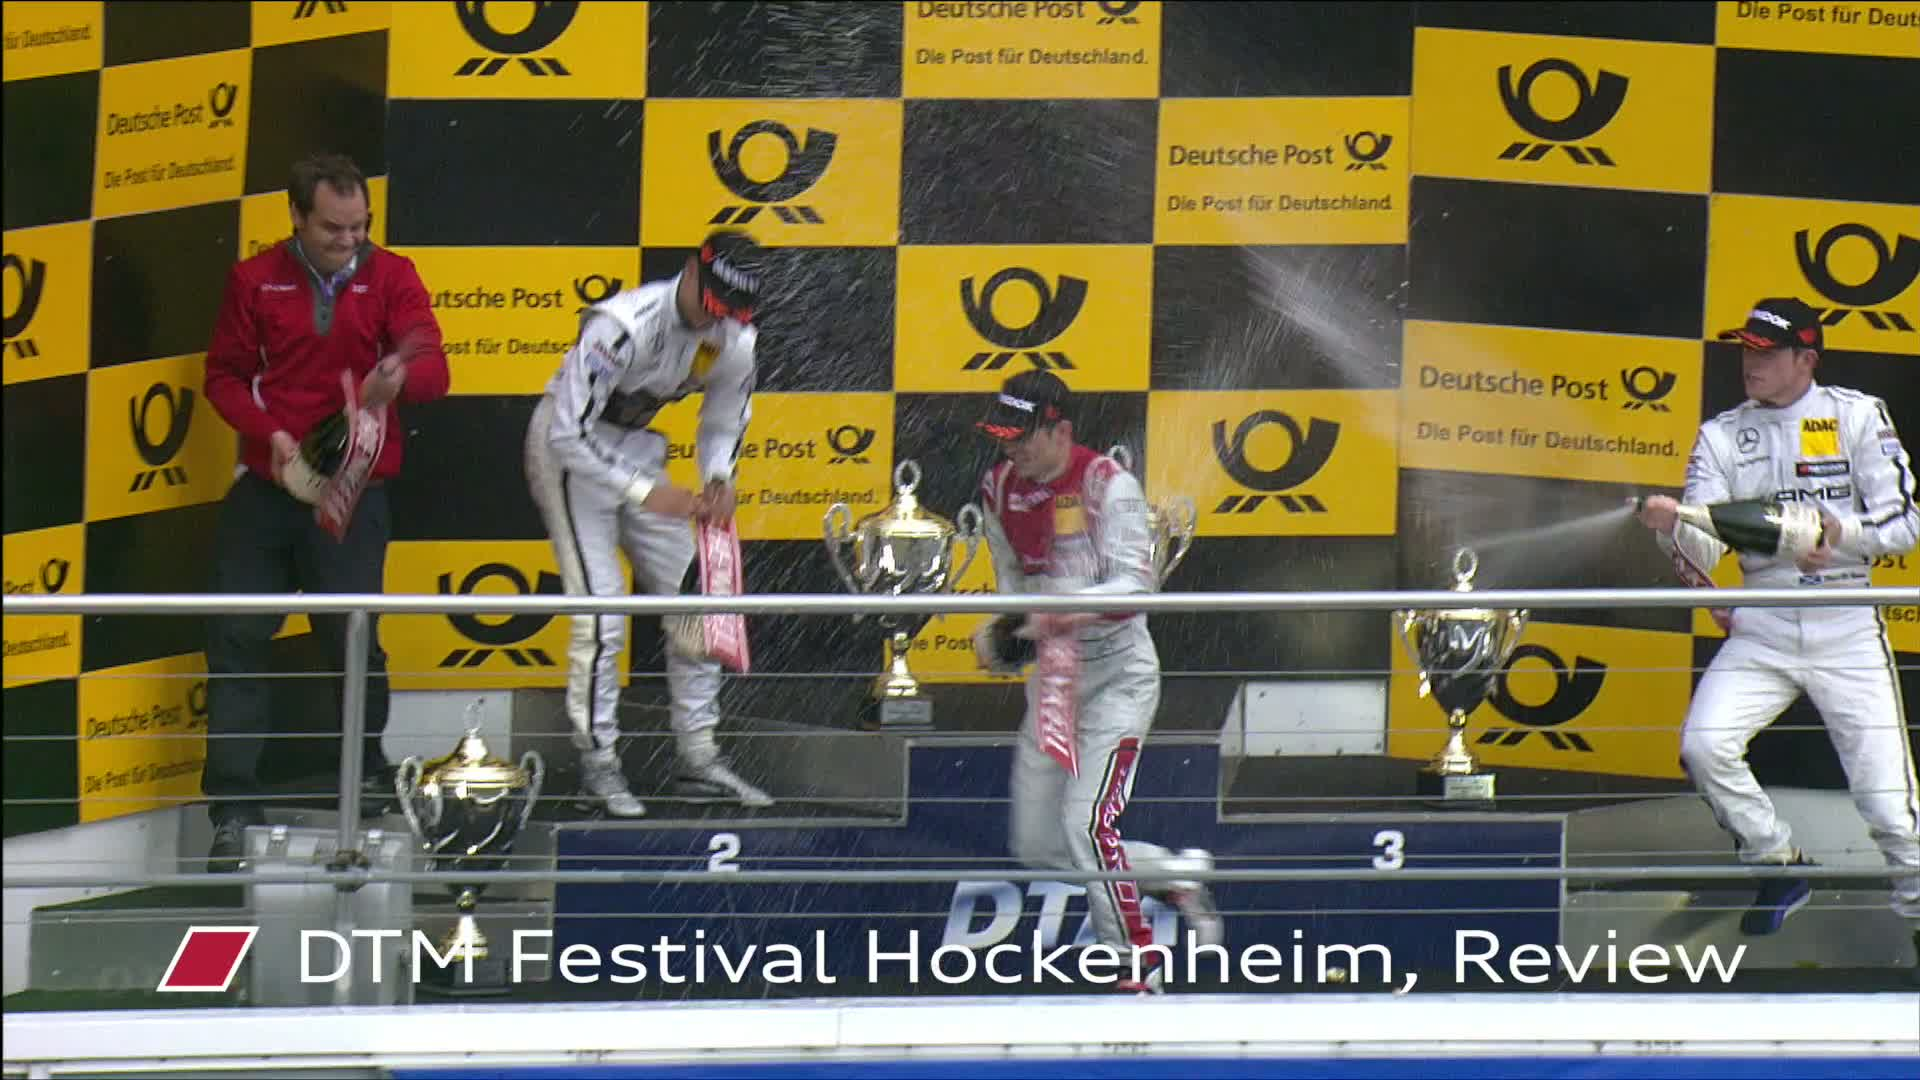 60 Seconds of Audi Sport 22/2015 - DTM Festival Hockenheim, review